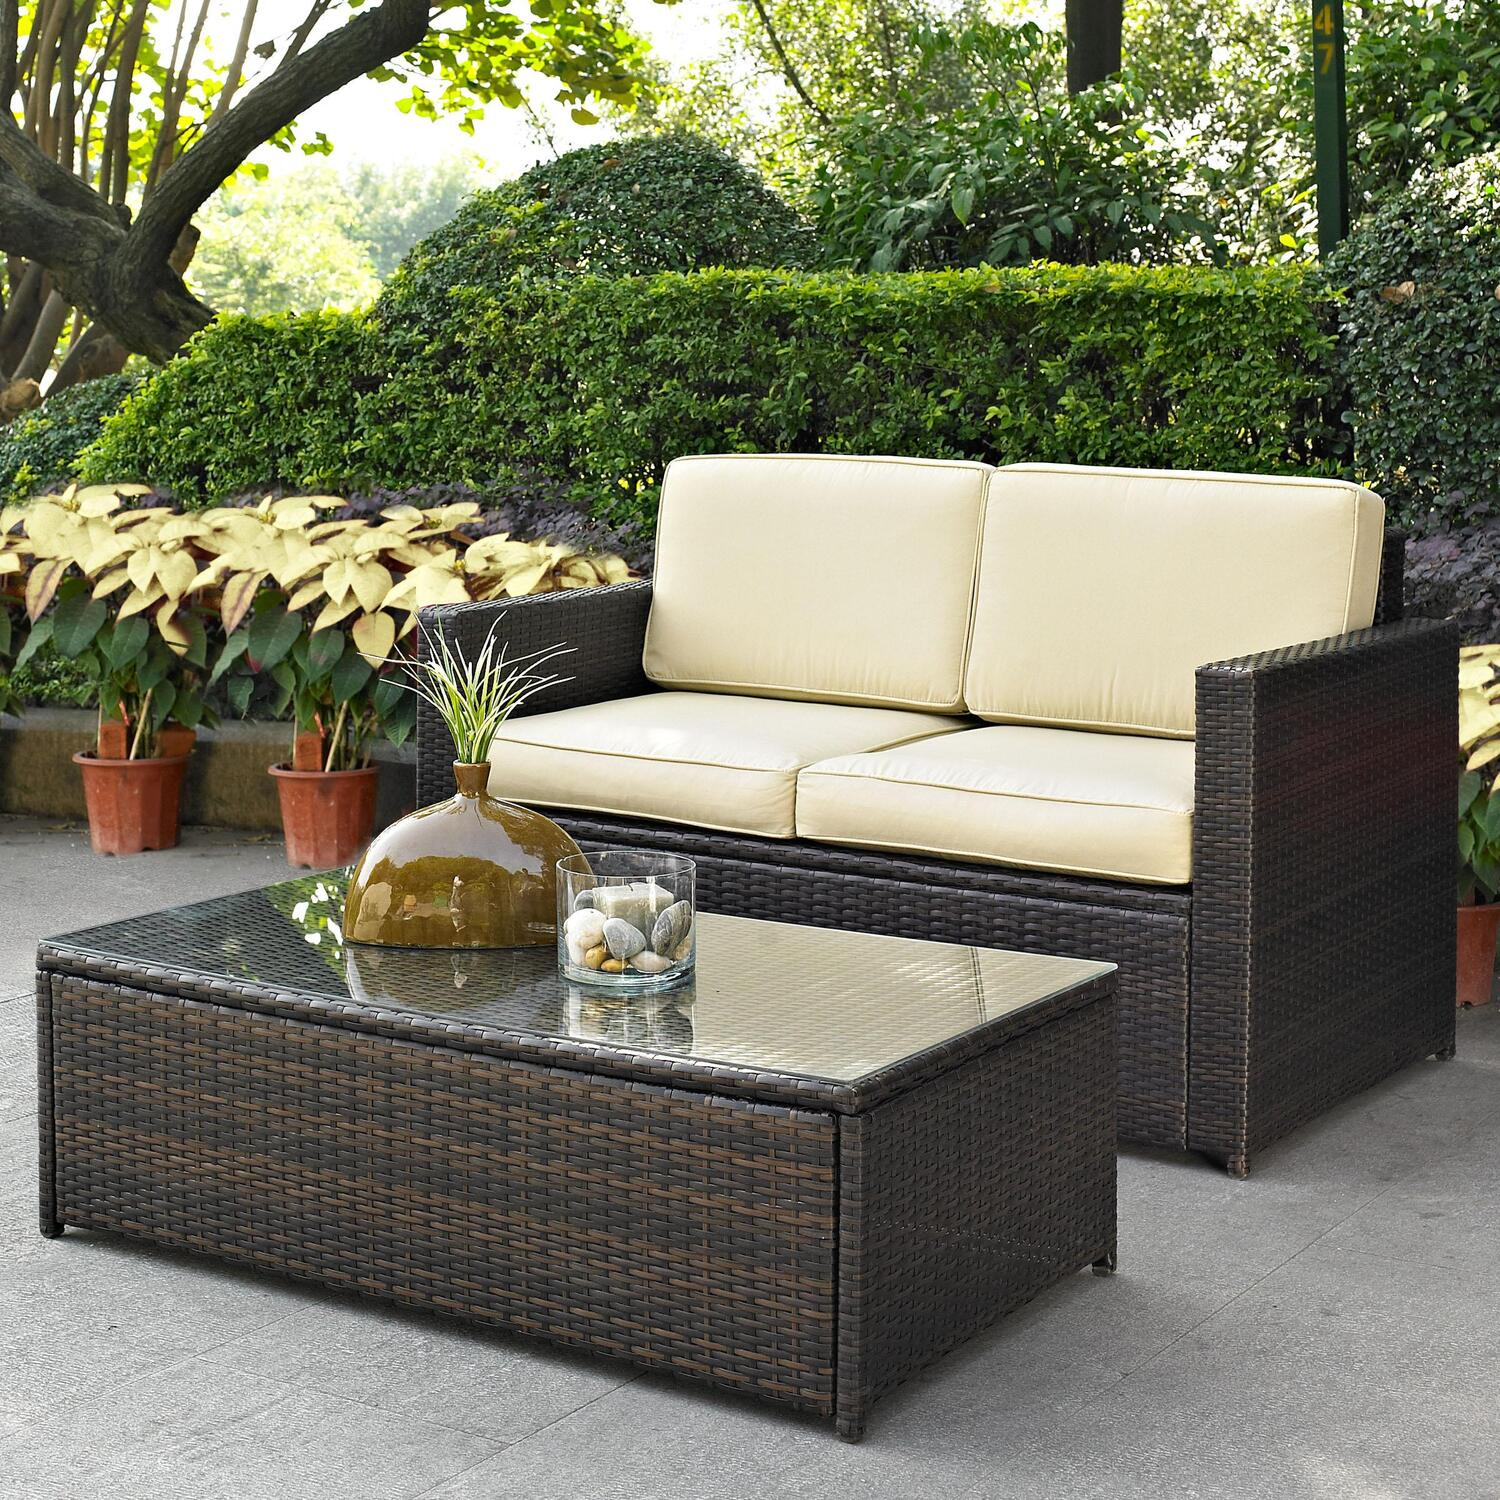 Palm Harbor 2 Piece Outdoor Wicker Seating Set Loveseat & Glass